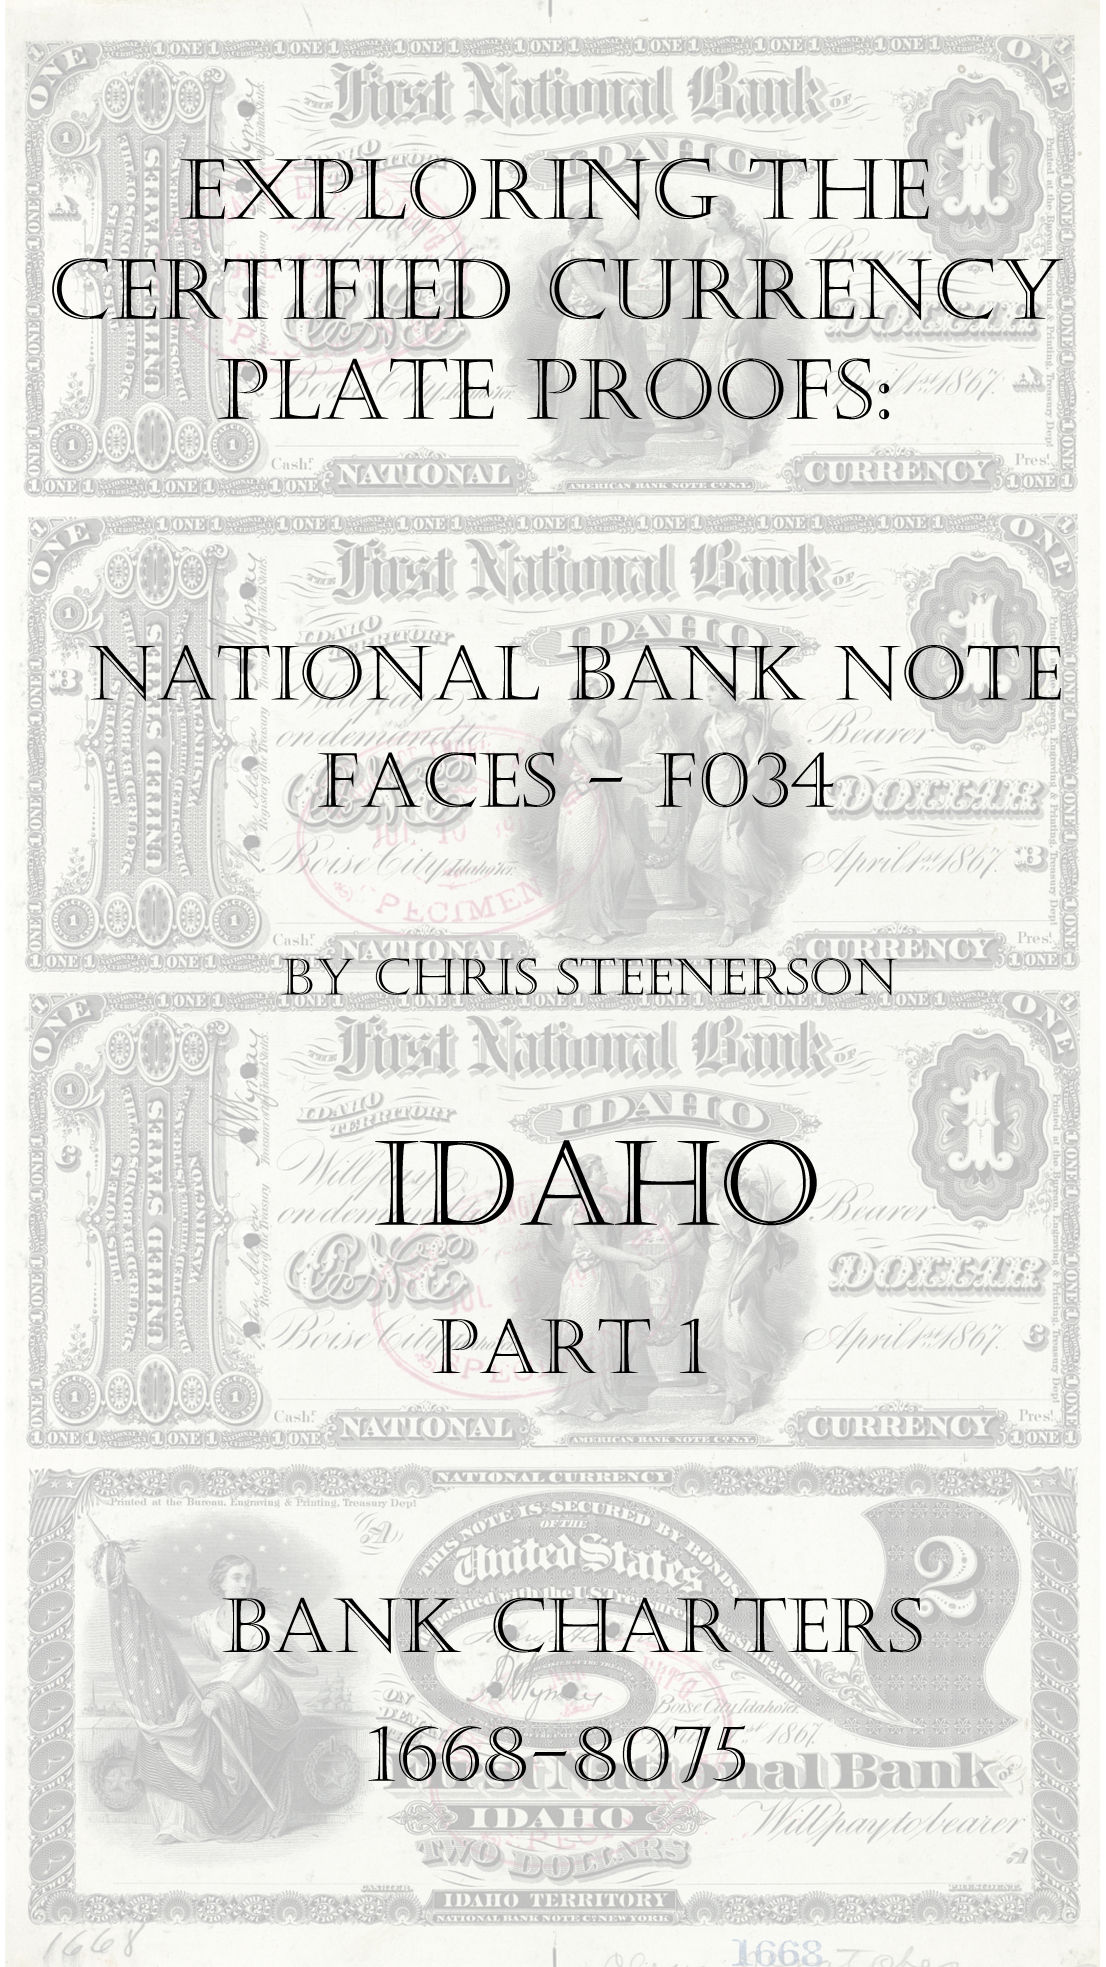 Idaho National Bank Note Currency Proofs